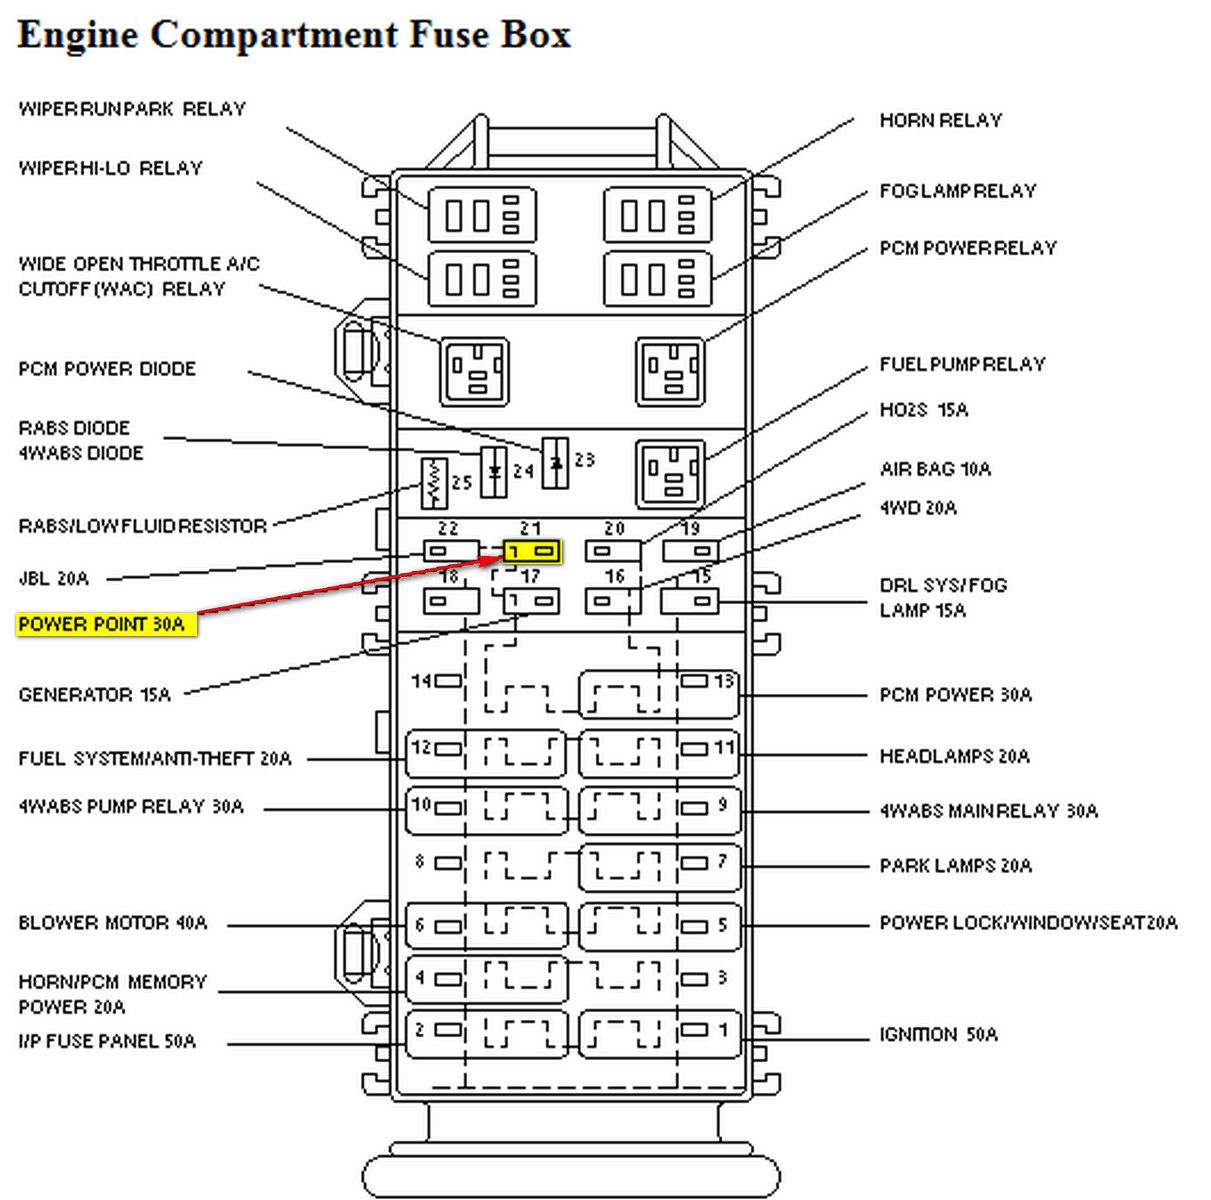 97 explorer fuse box wiring diagram fuse box diagram also leryn franco on 2001 ford e350 fuel pump relay [ 1211 x 1200 Pixel ]